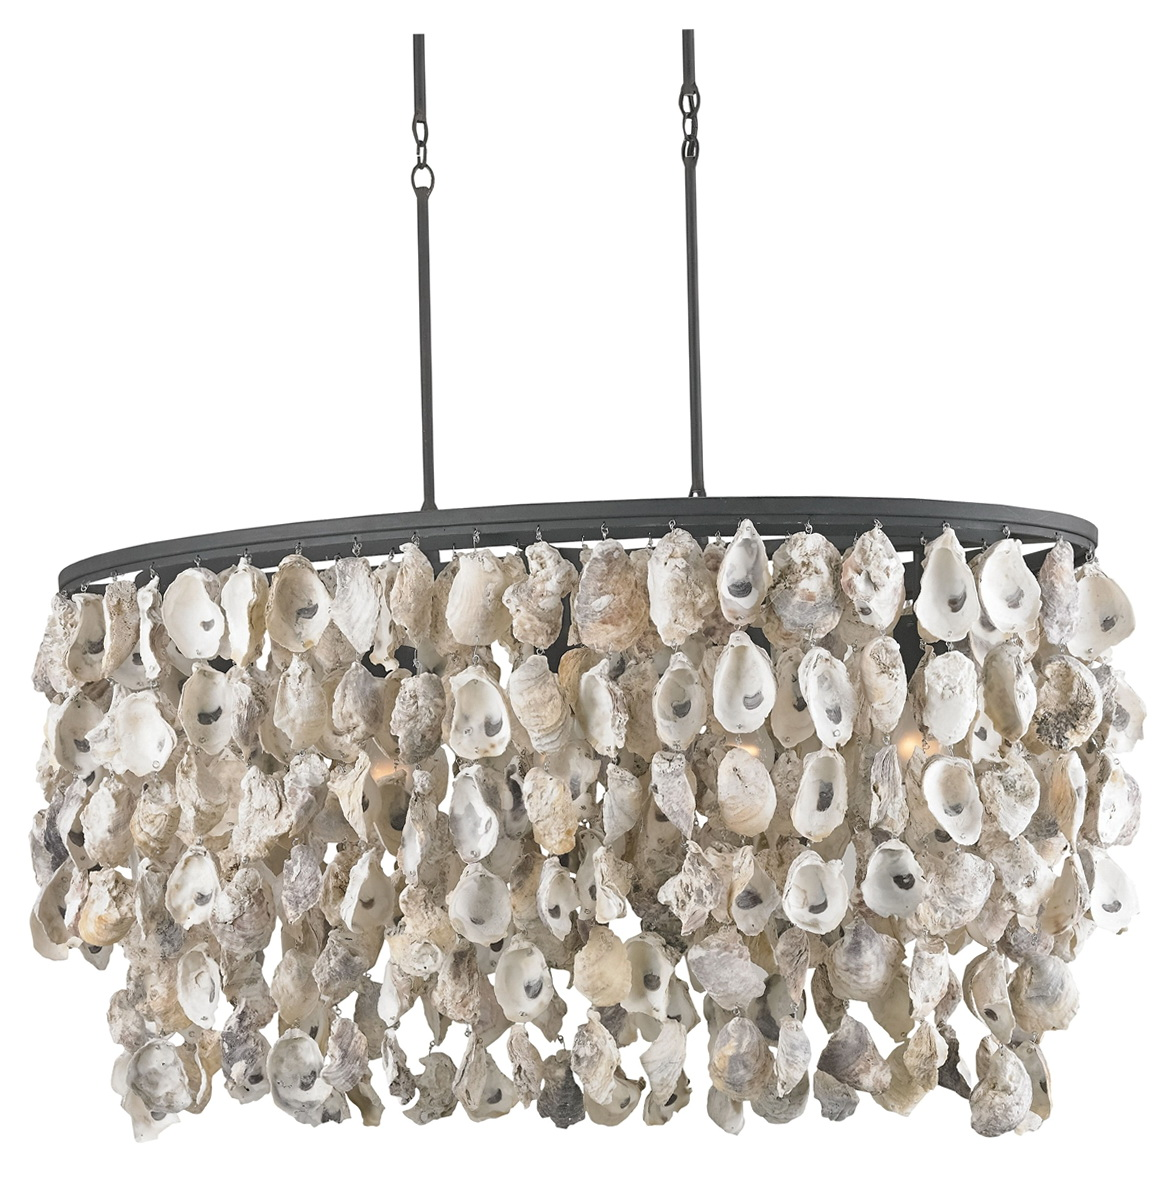 Oyster Shell Chandelier Diy